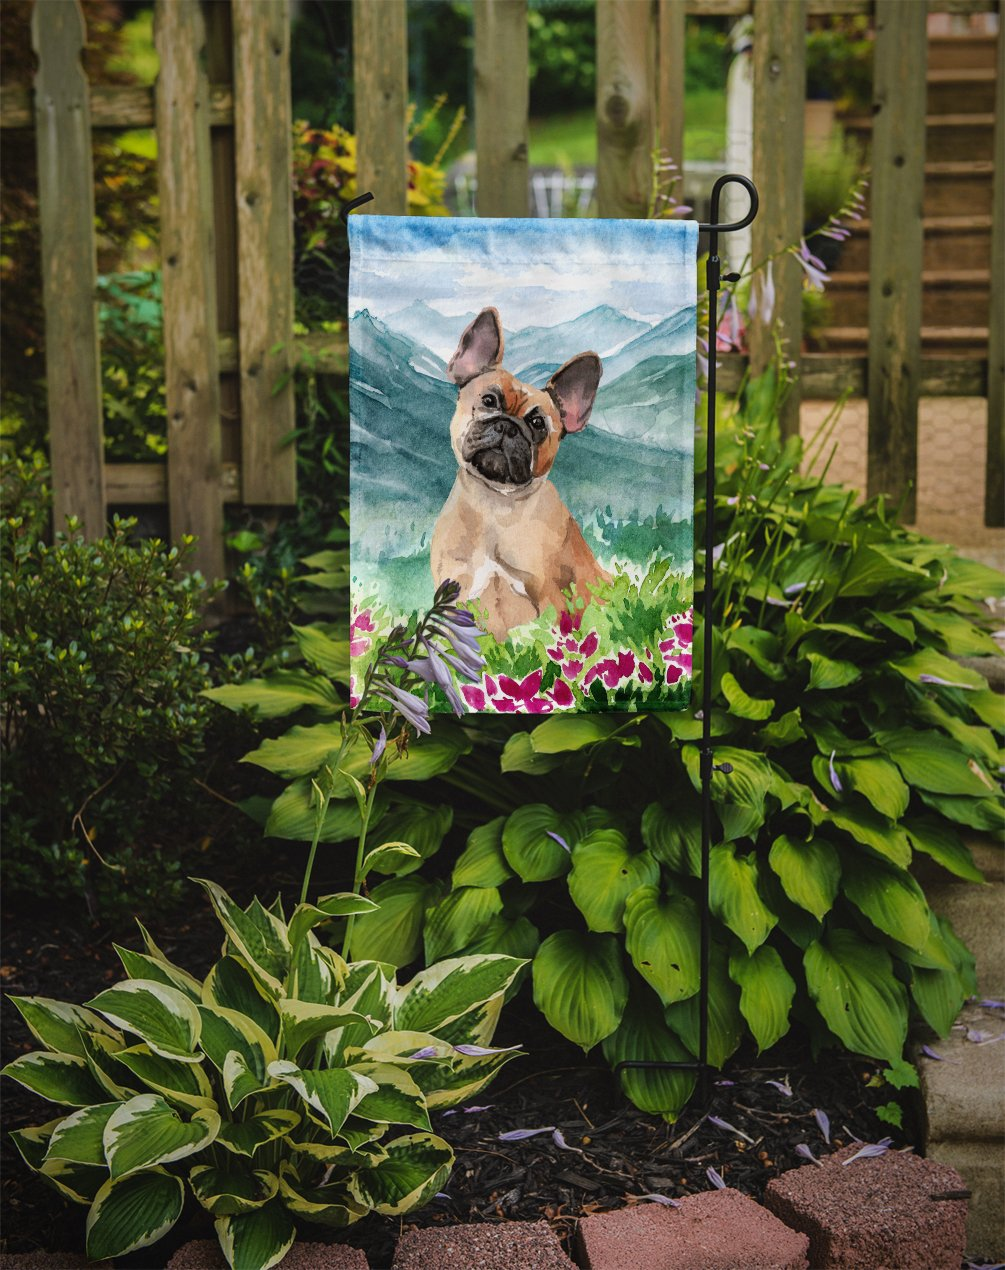 Mountian Flowers Fawn French Bulldog Flag Garden Size CK1978GF by Caroline's Treasures